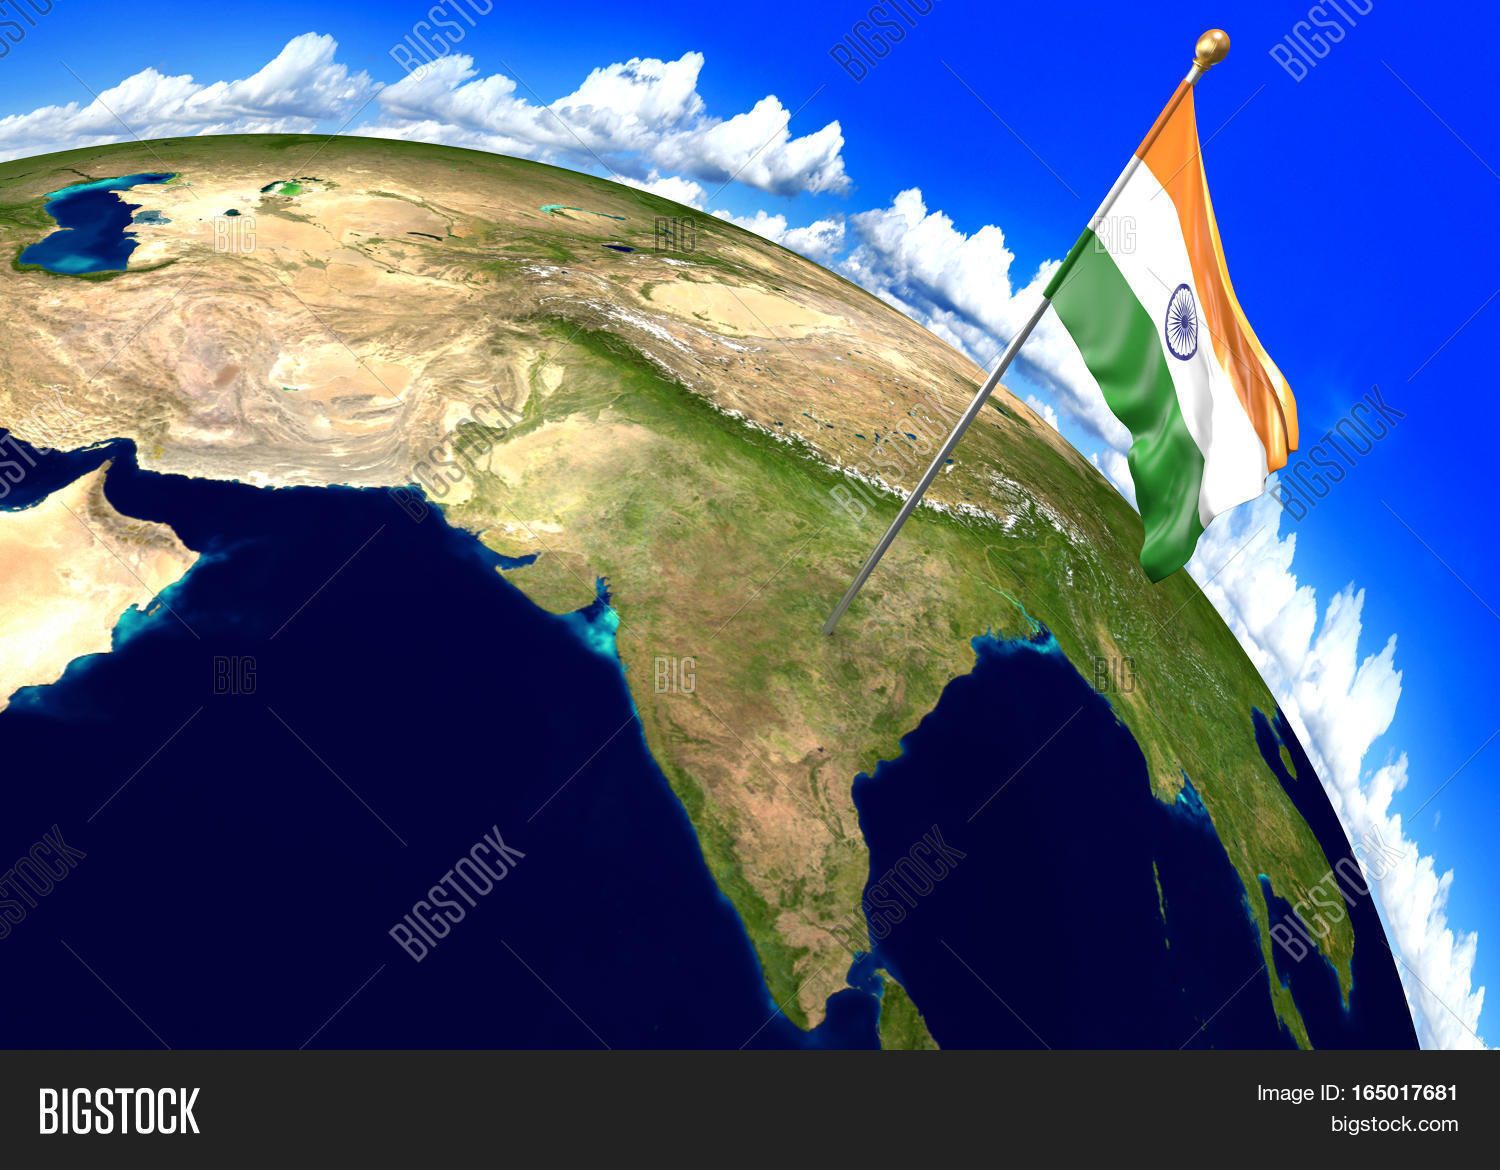 India national flag image photo free trial bigstock india national flag marking the country location on world map 3d rendering parts of gumiabroncs